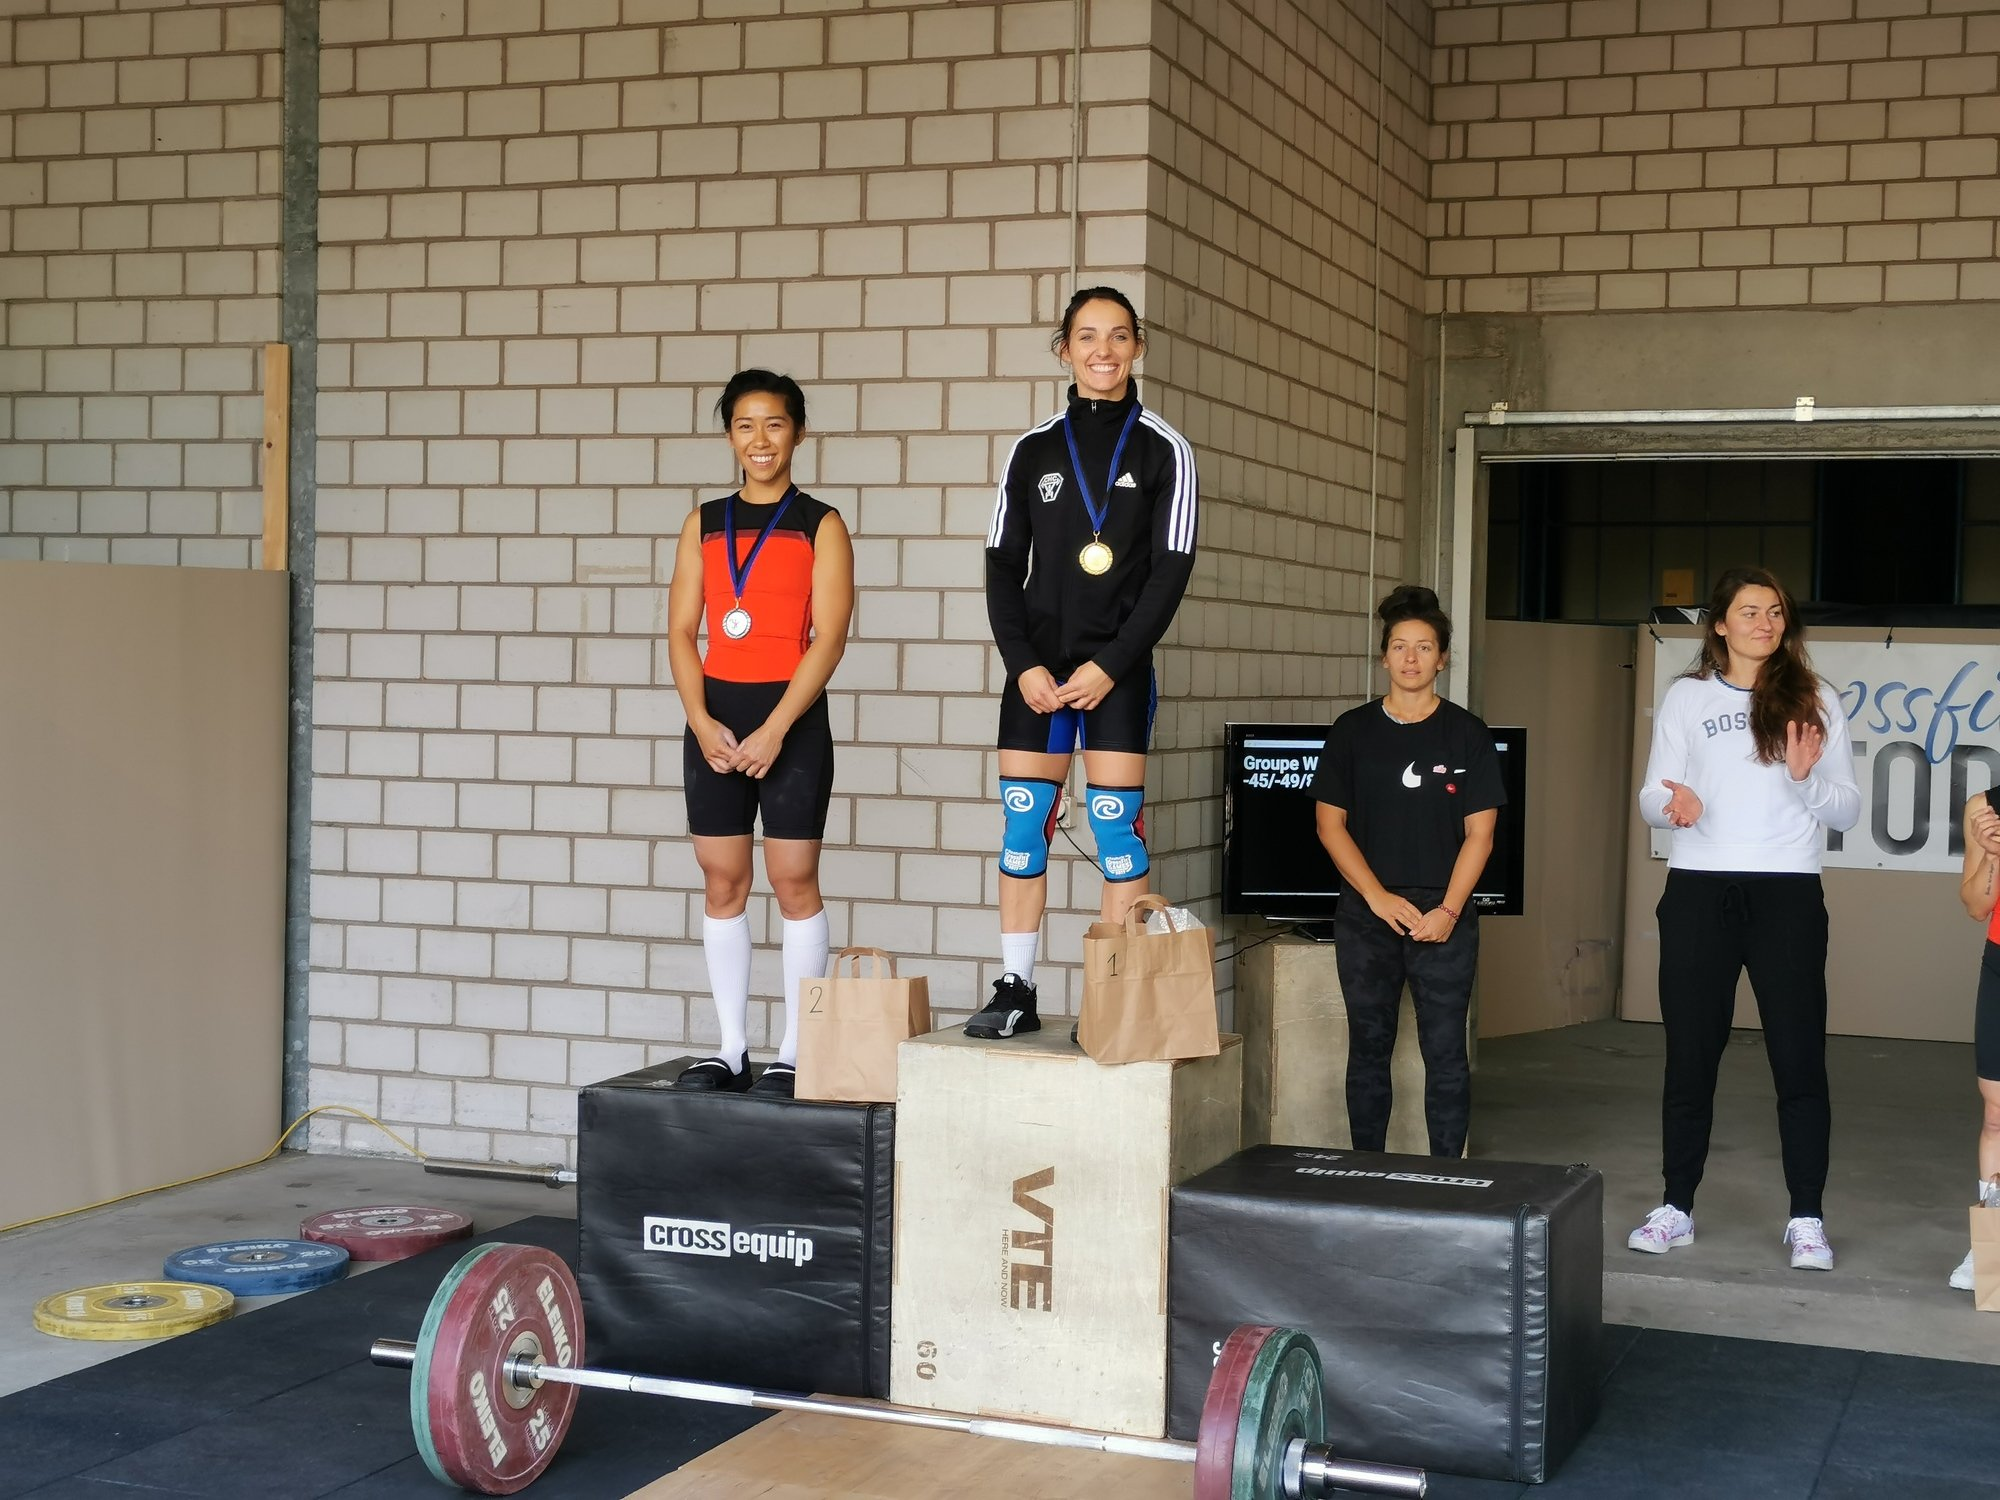 Caroline Pellaton and Titouan Verloes topped Swiss weightlifting champions